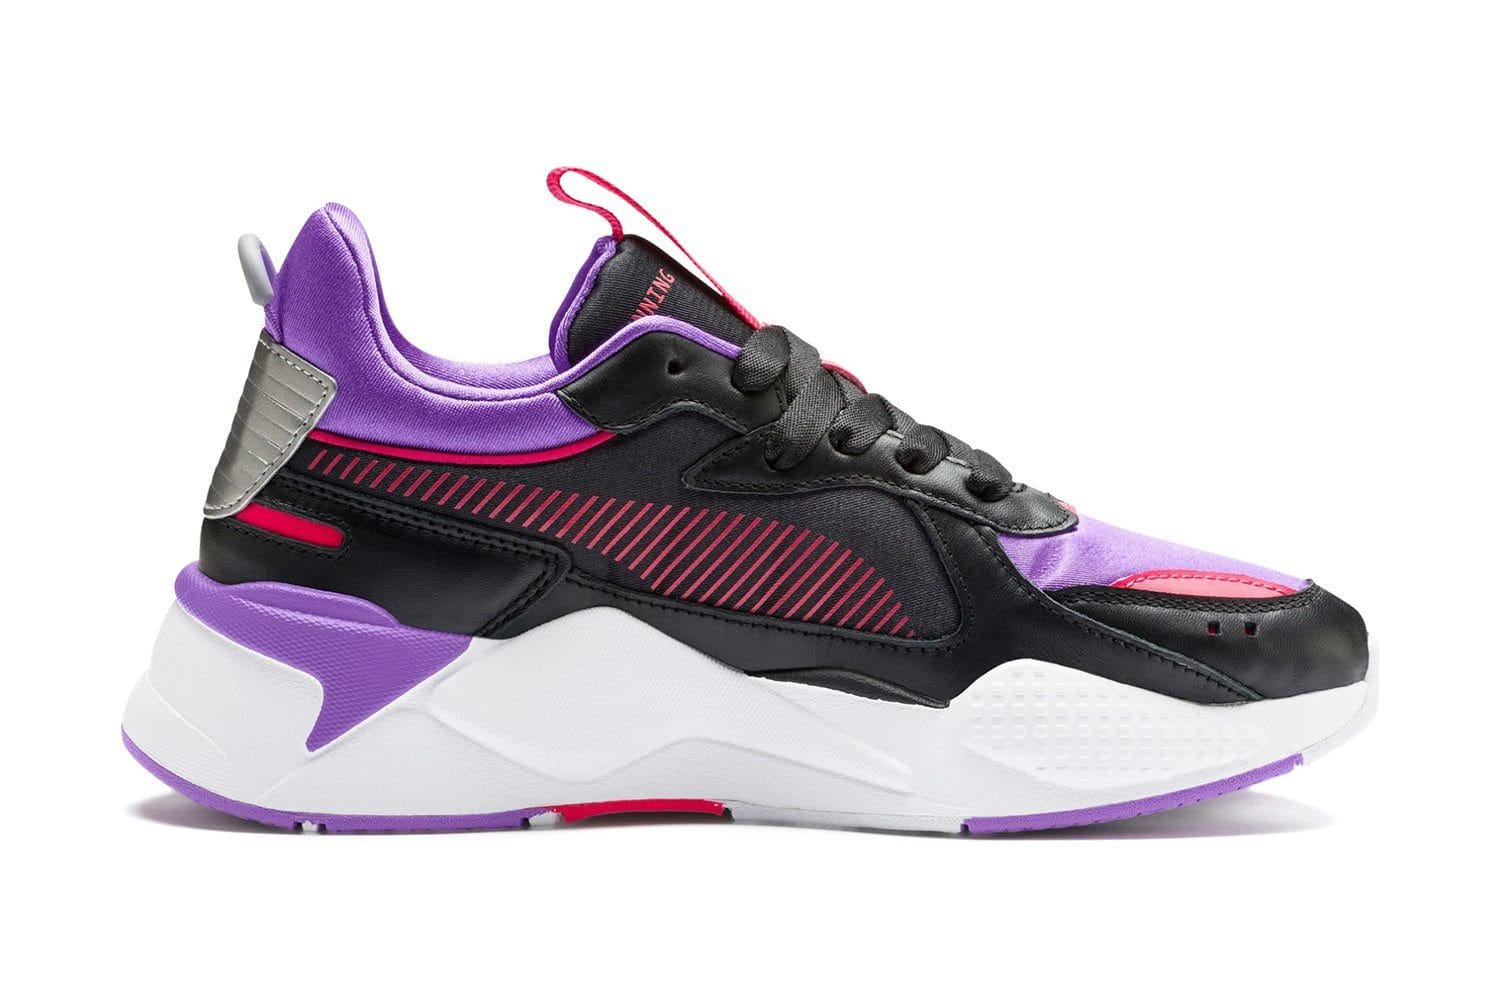 RS-X METALLIC WN'S - 370501 02 WOMENS FOOTWEAR PUMA